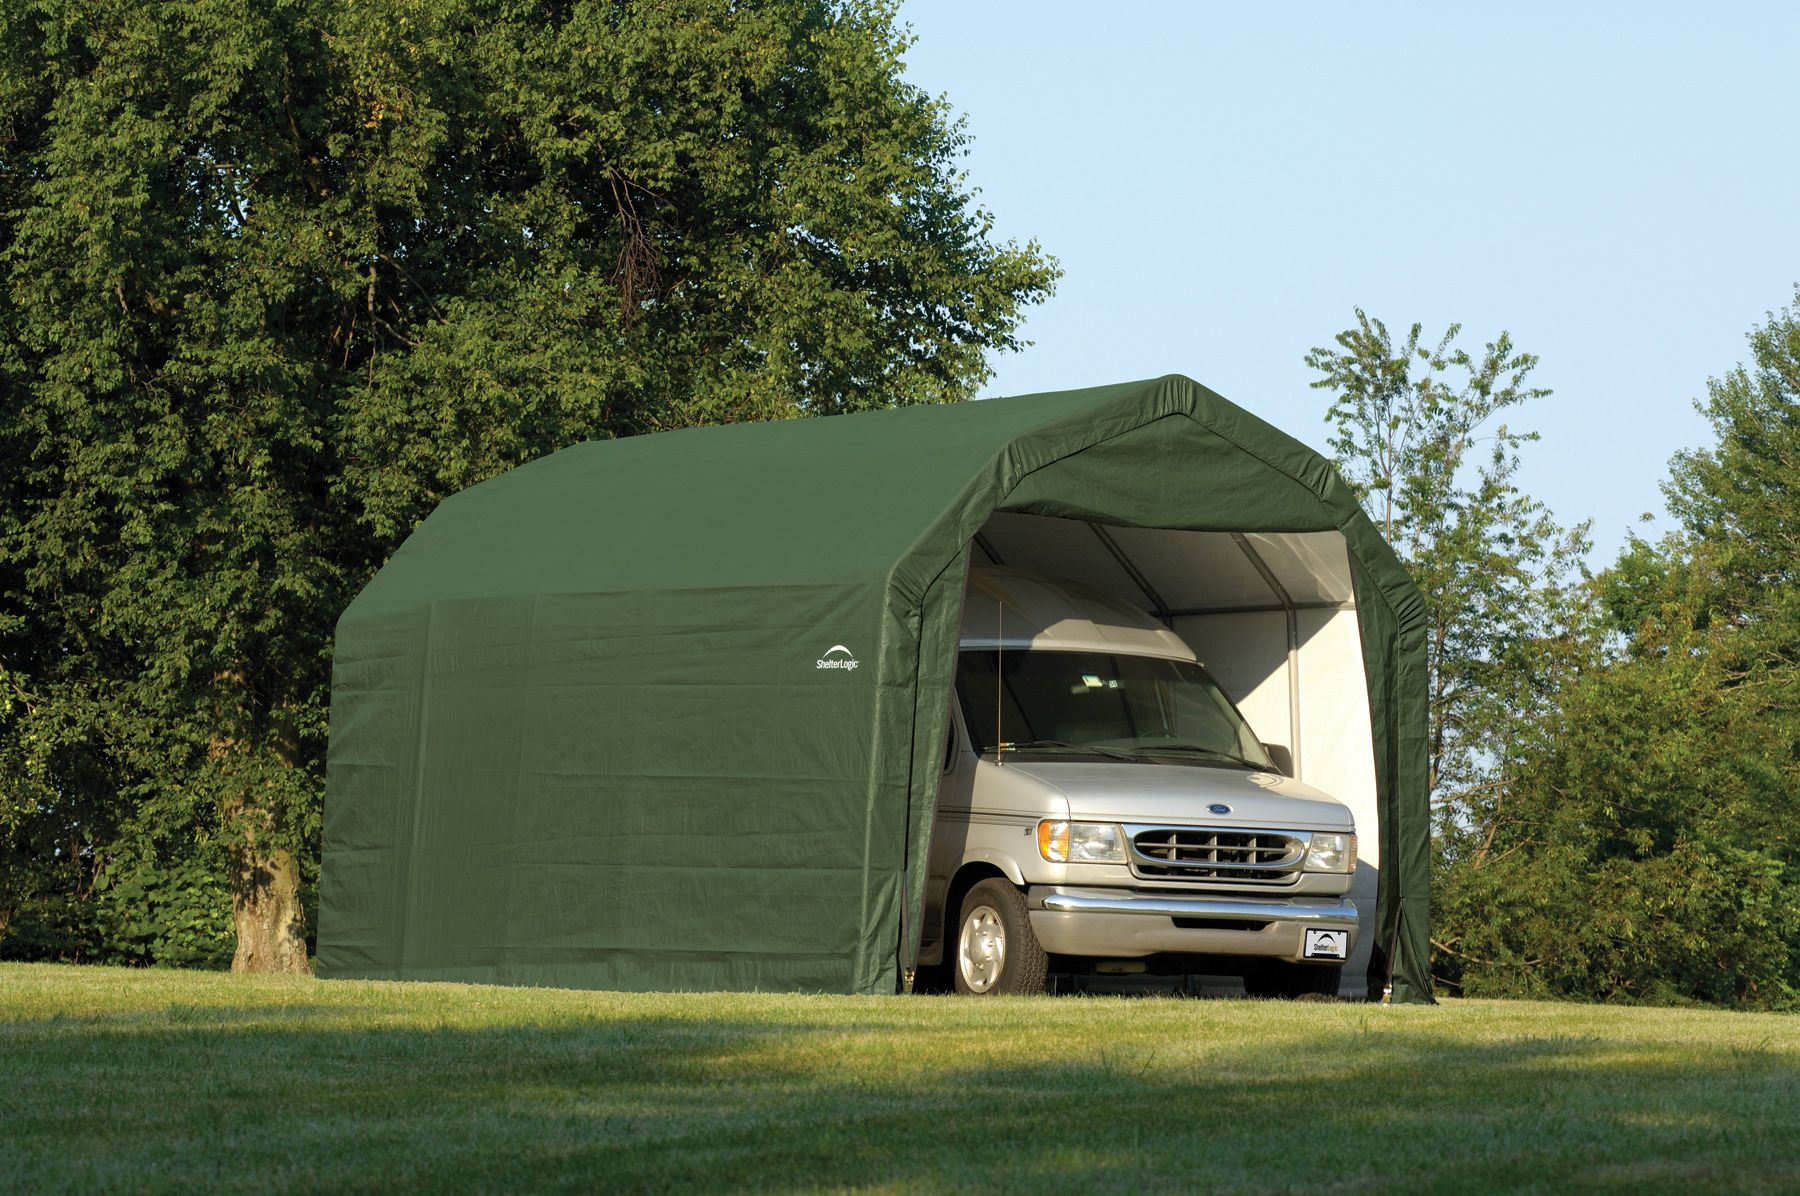 garage autoshelter designs carport box of canopies idees shelters also shelterlogic et ideas with tarps avec best top round in a